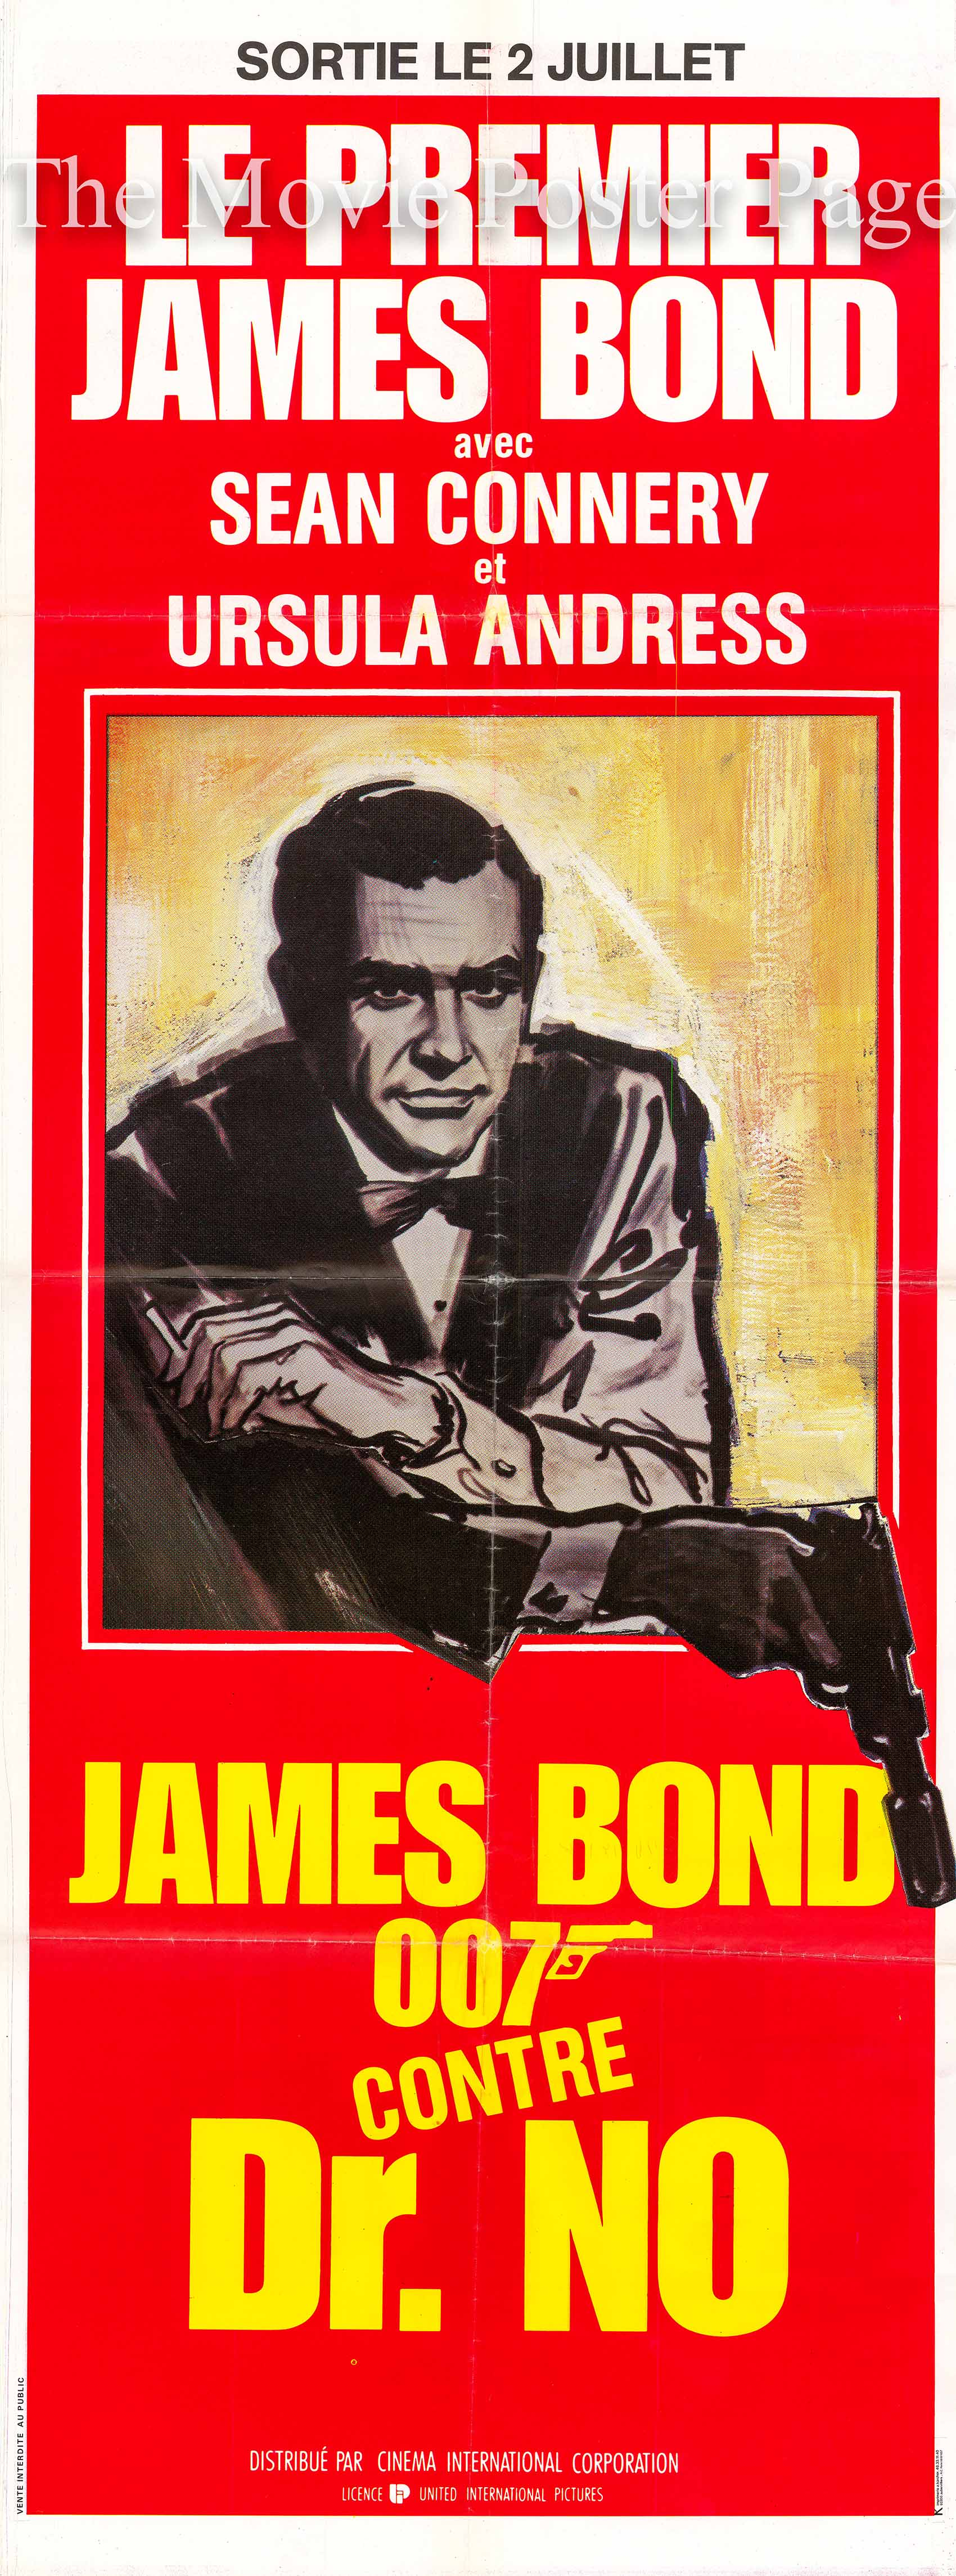 Pictured is a French door panel poster made for a 1980s rerelease of the 1962 Terence Young film Dr. No starring Sean Connery as James Bond.